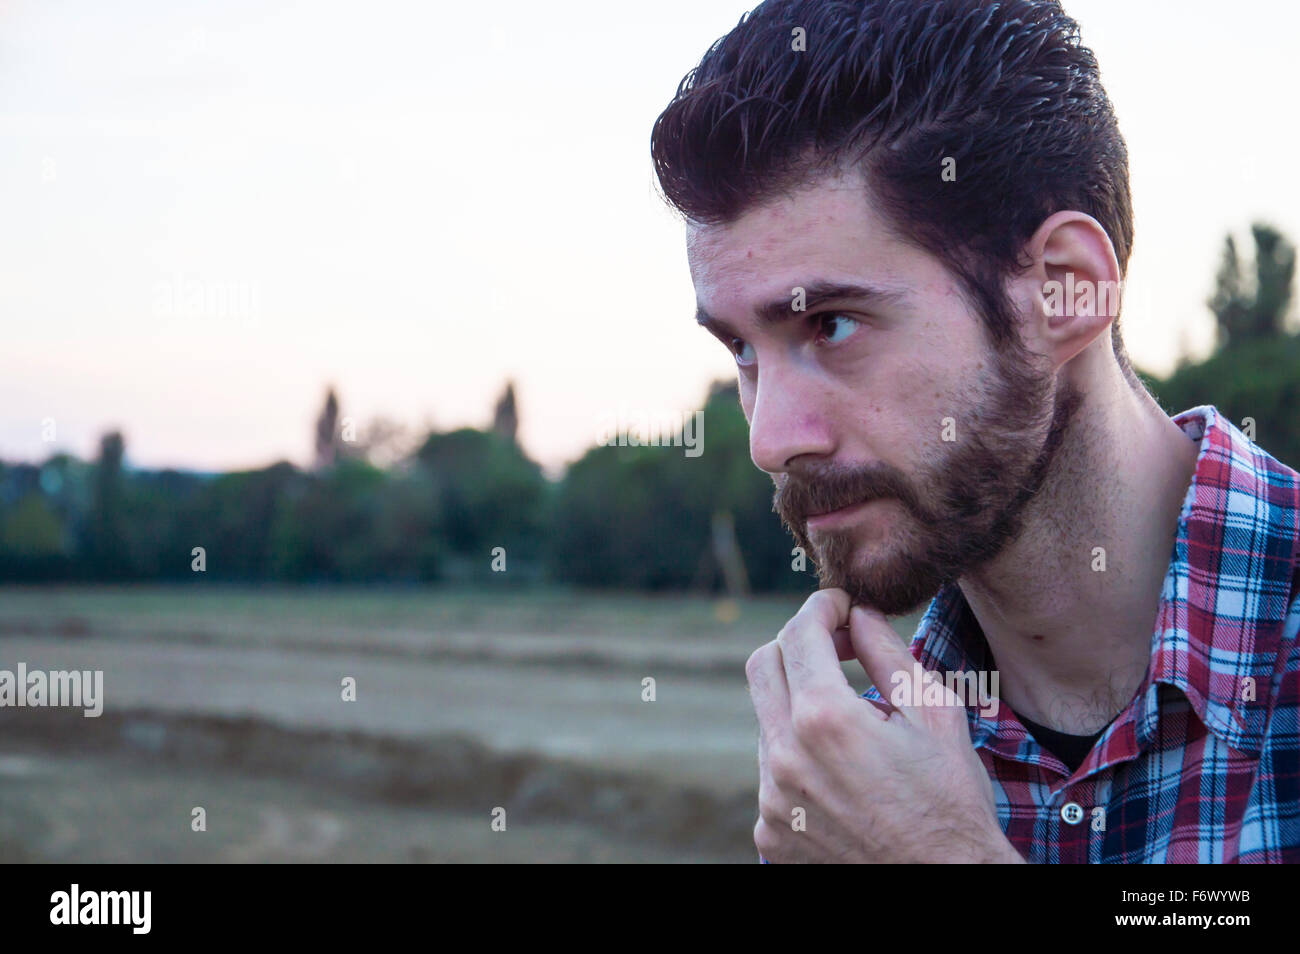 Man shows doubts - Stock Image